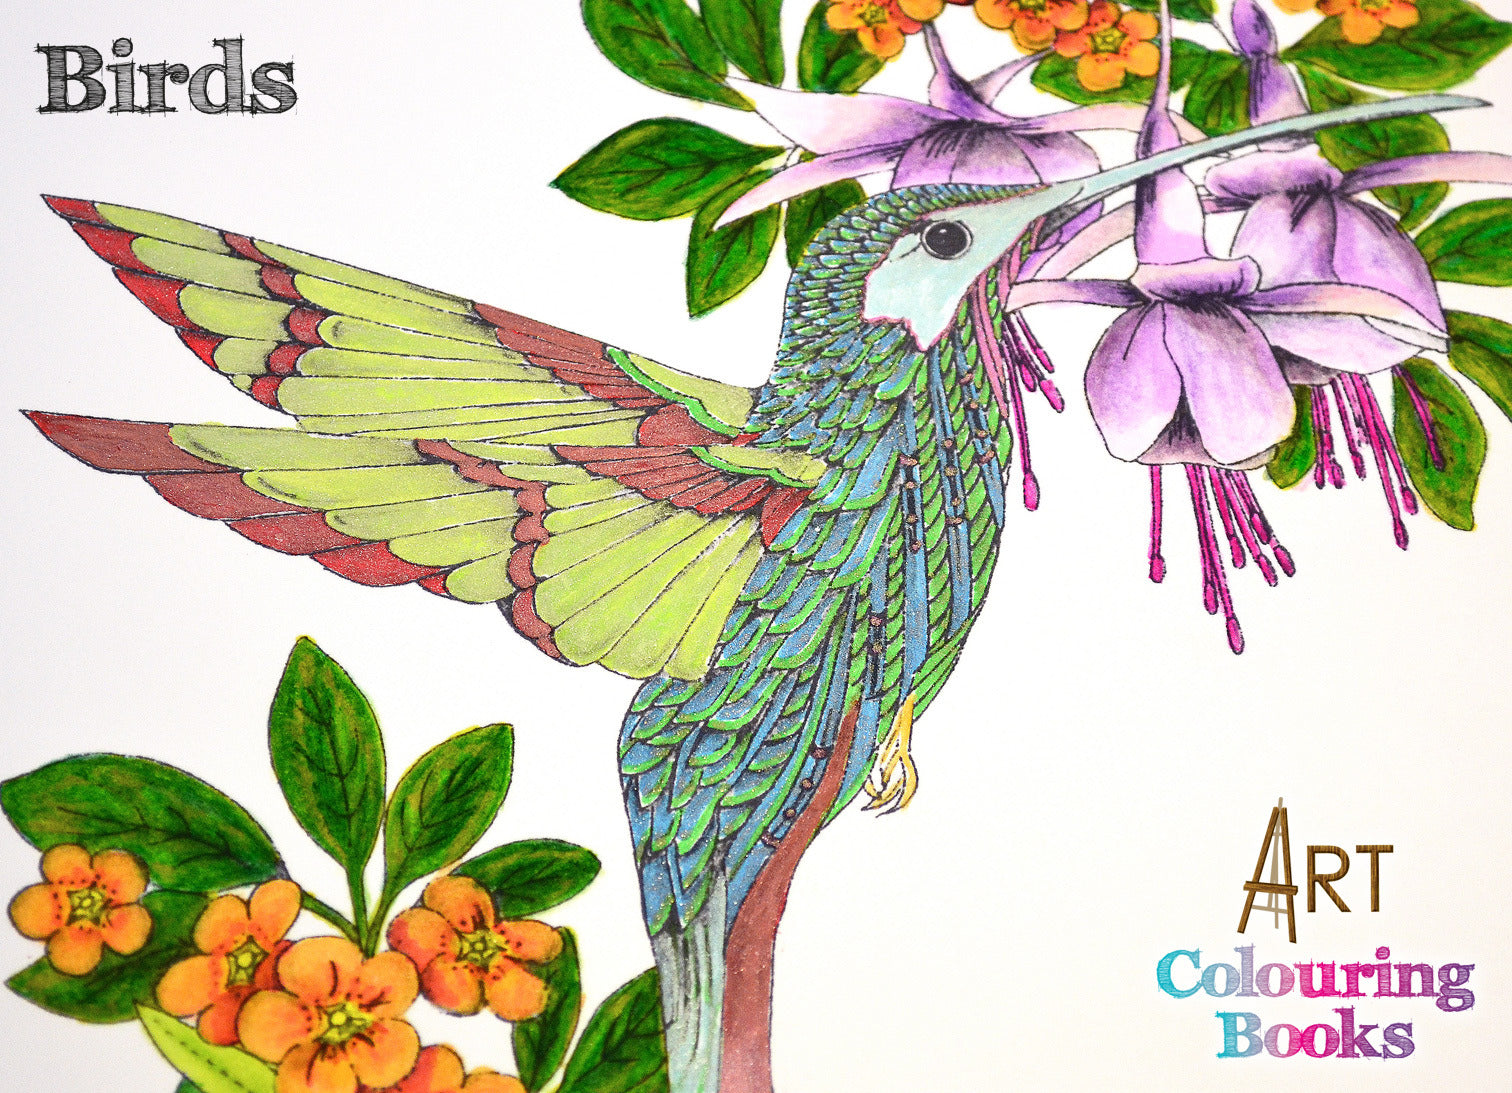 Birds Art Coloring Book | Katy Sue Designs – Katy Sue Designs US